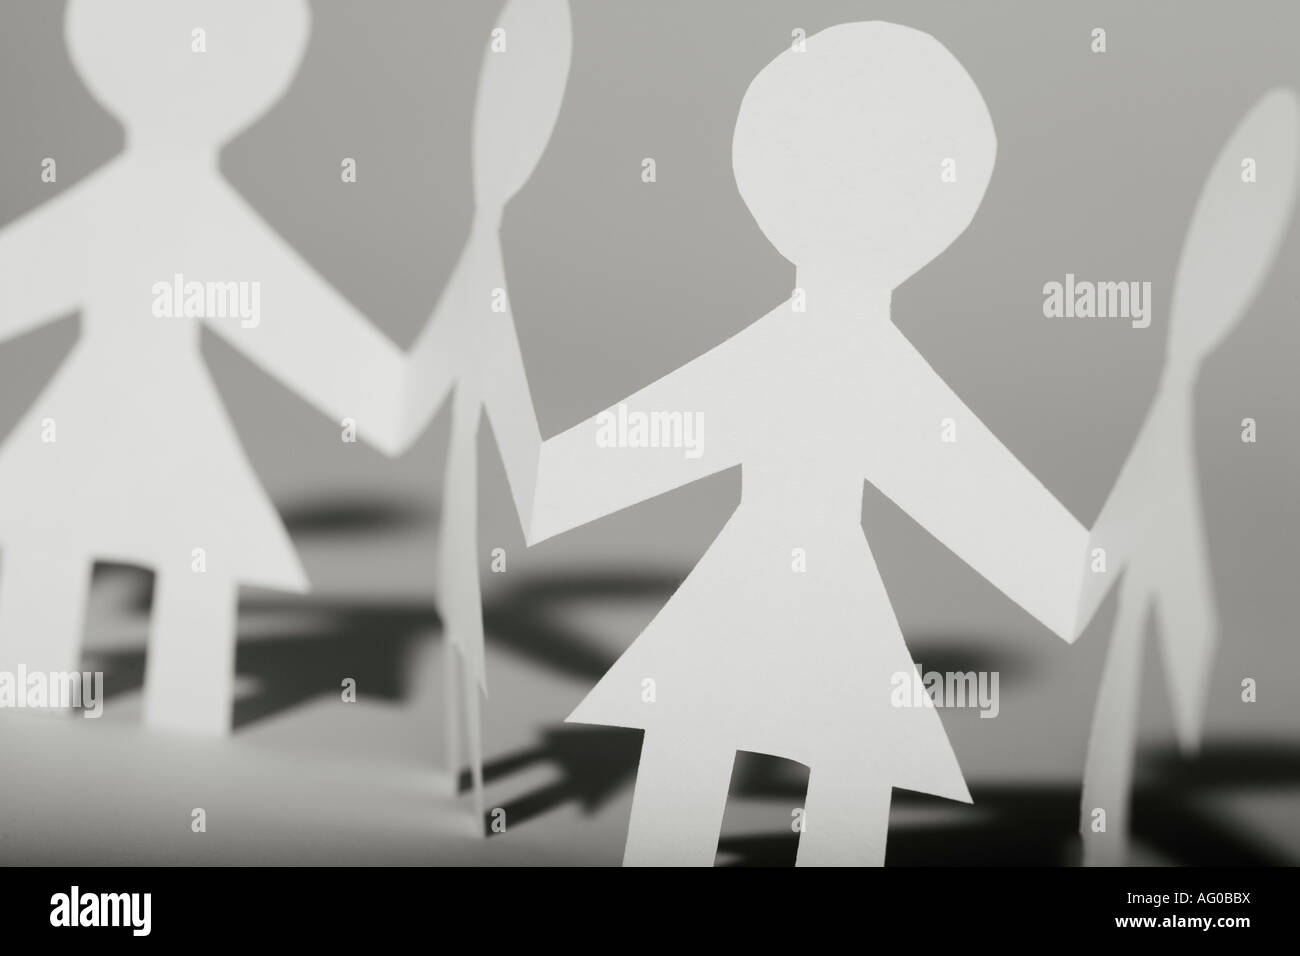 Female Gender Symbol Stock Photos Female Gender Symbol Stock